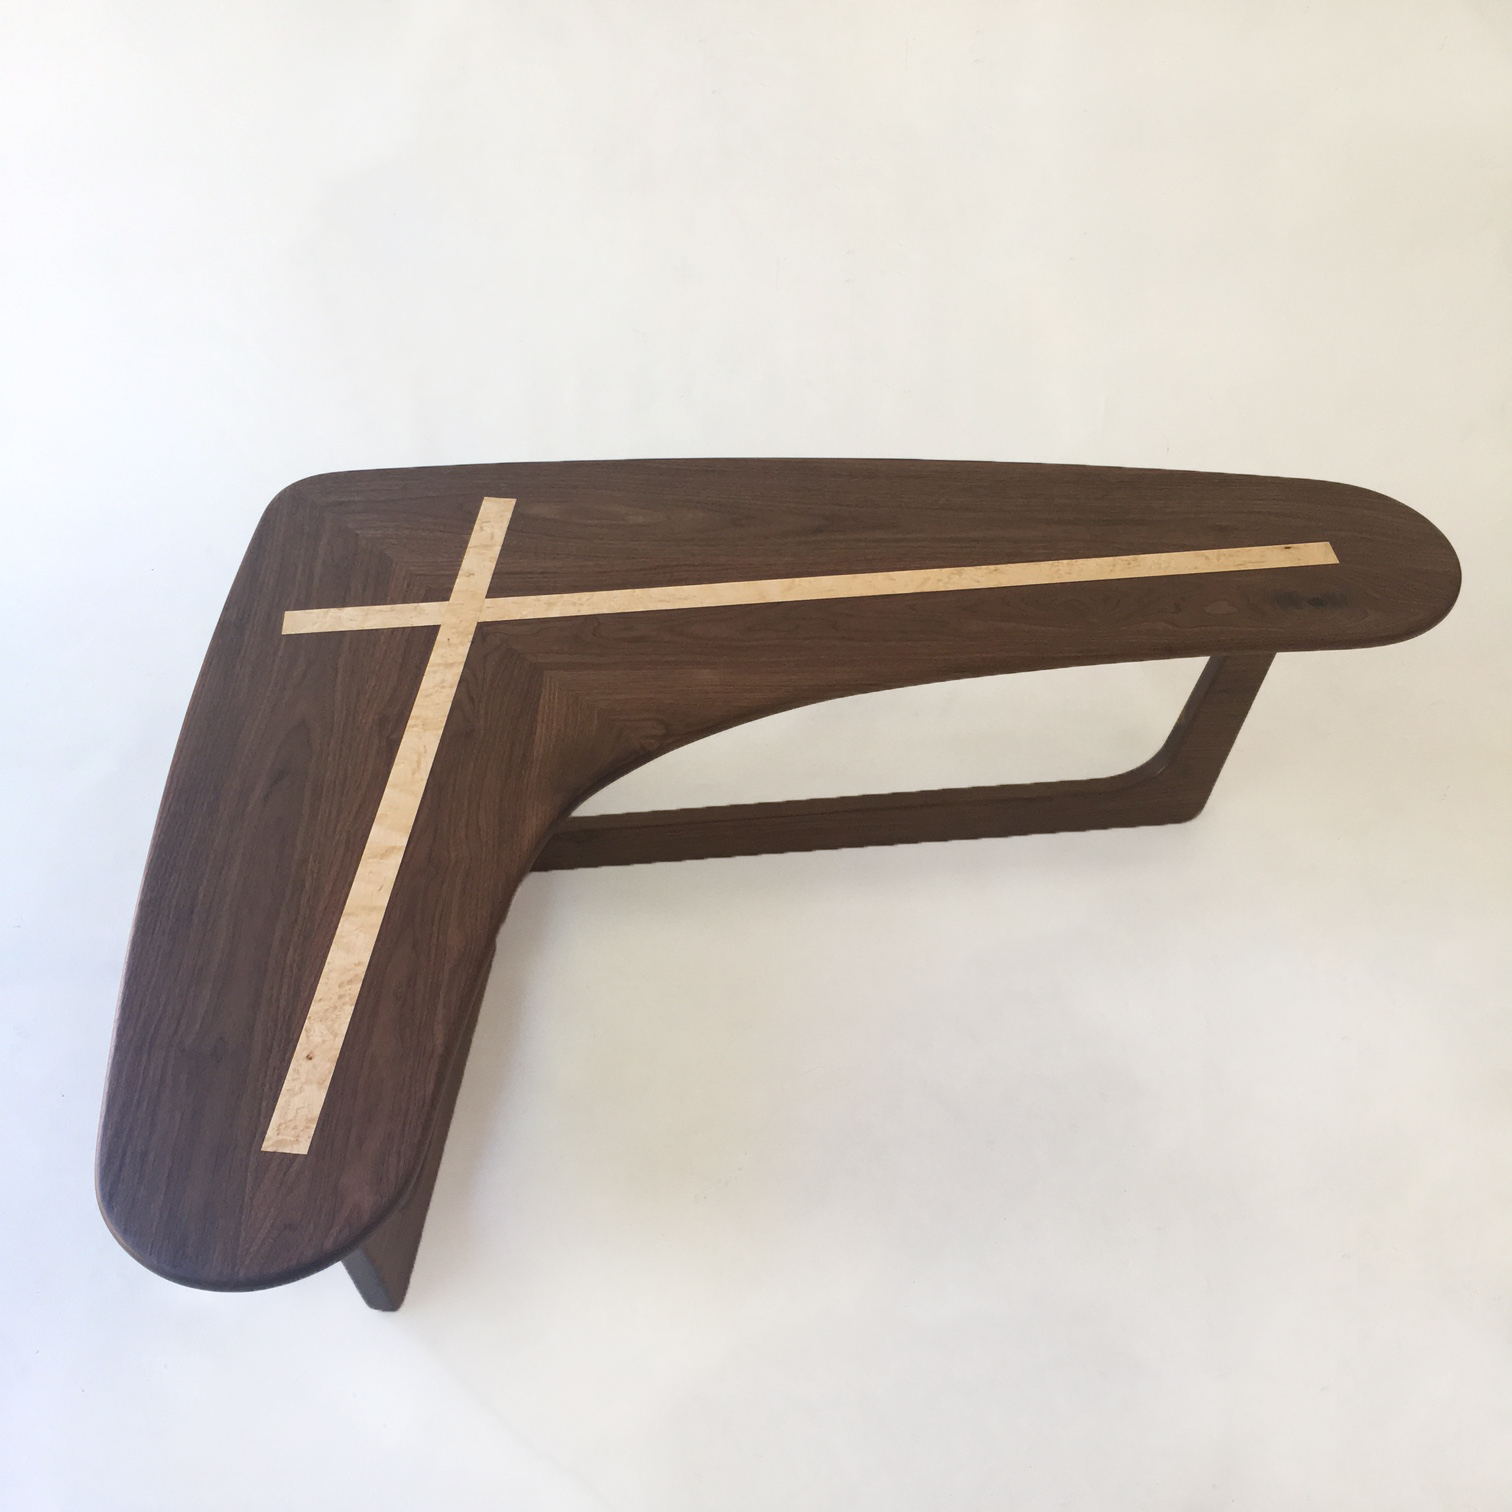 Pearsall Inspired X Boomerang Cocktail Table In Solid Walnut - Mid century modern boomerang coffee table